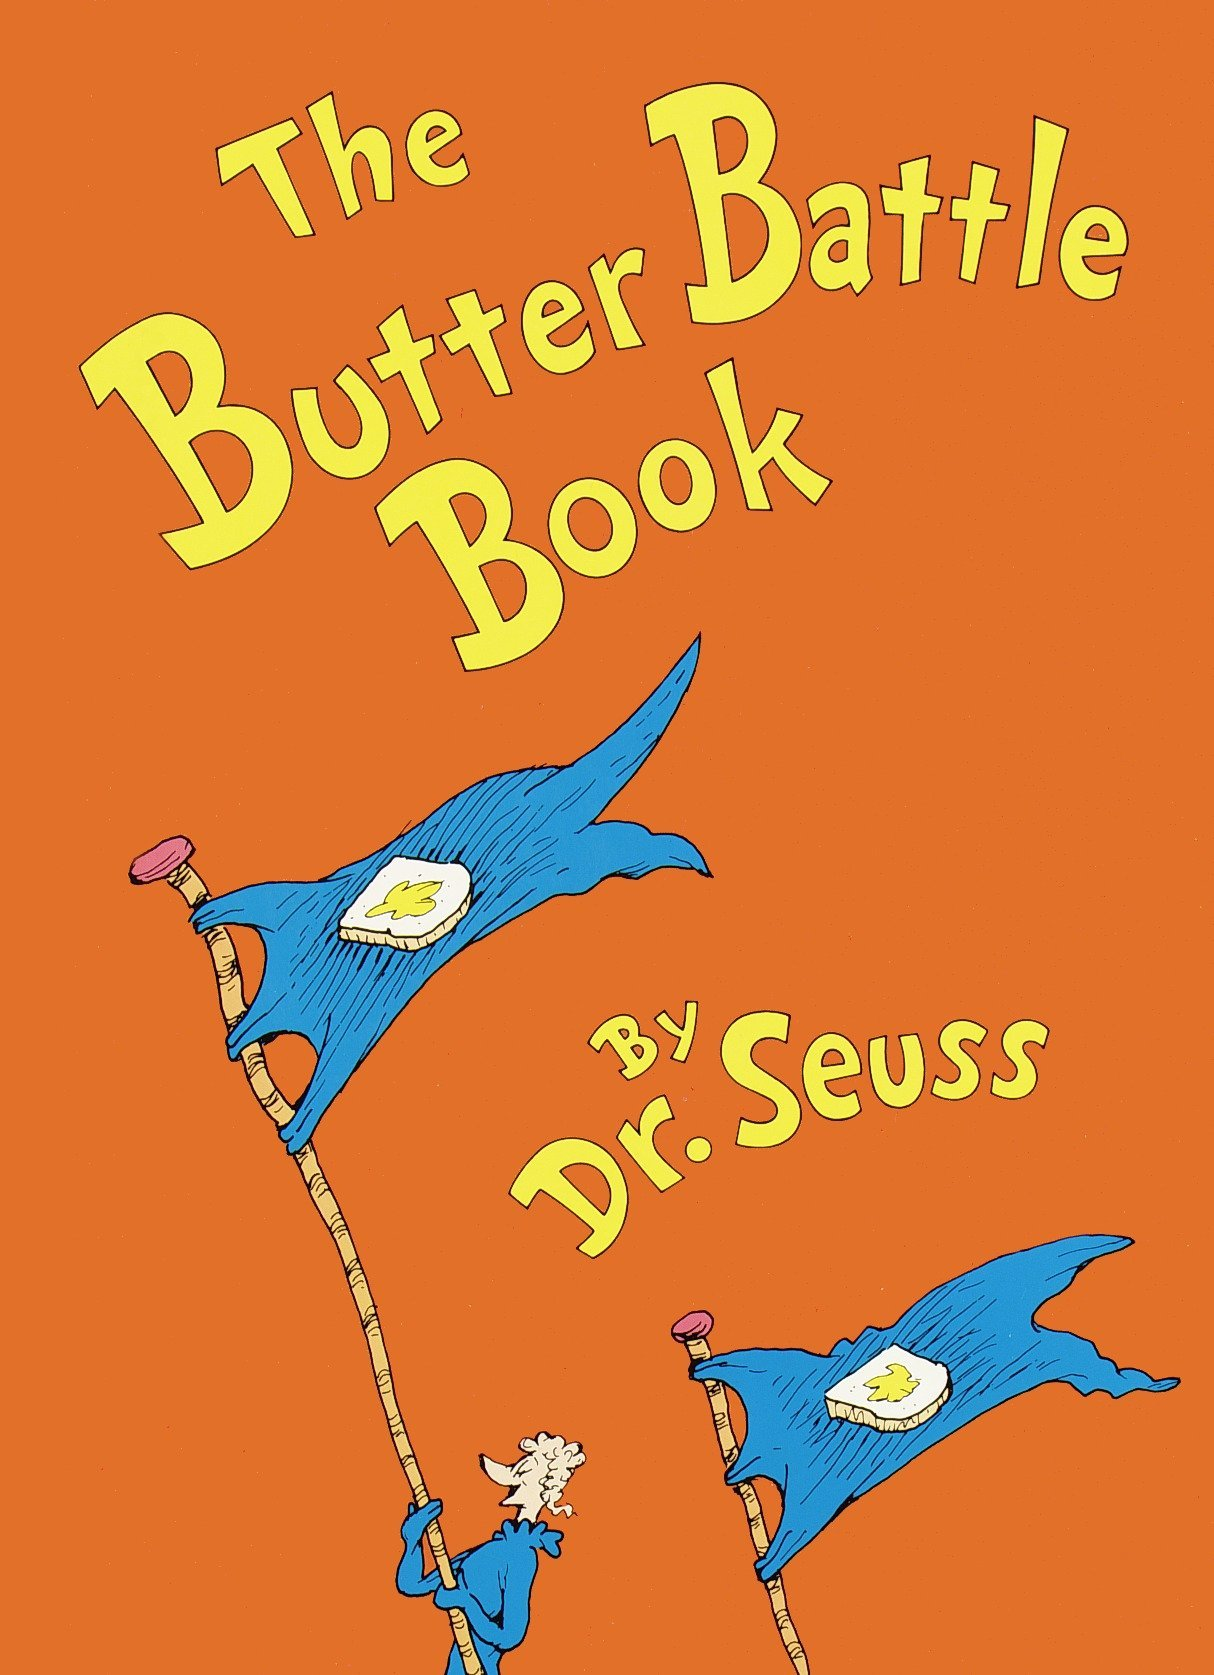 The Butter Battle Book: (New York Times Notable Book of the Year) (Classic Seuss) by Random House Books for Young Readers